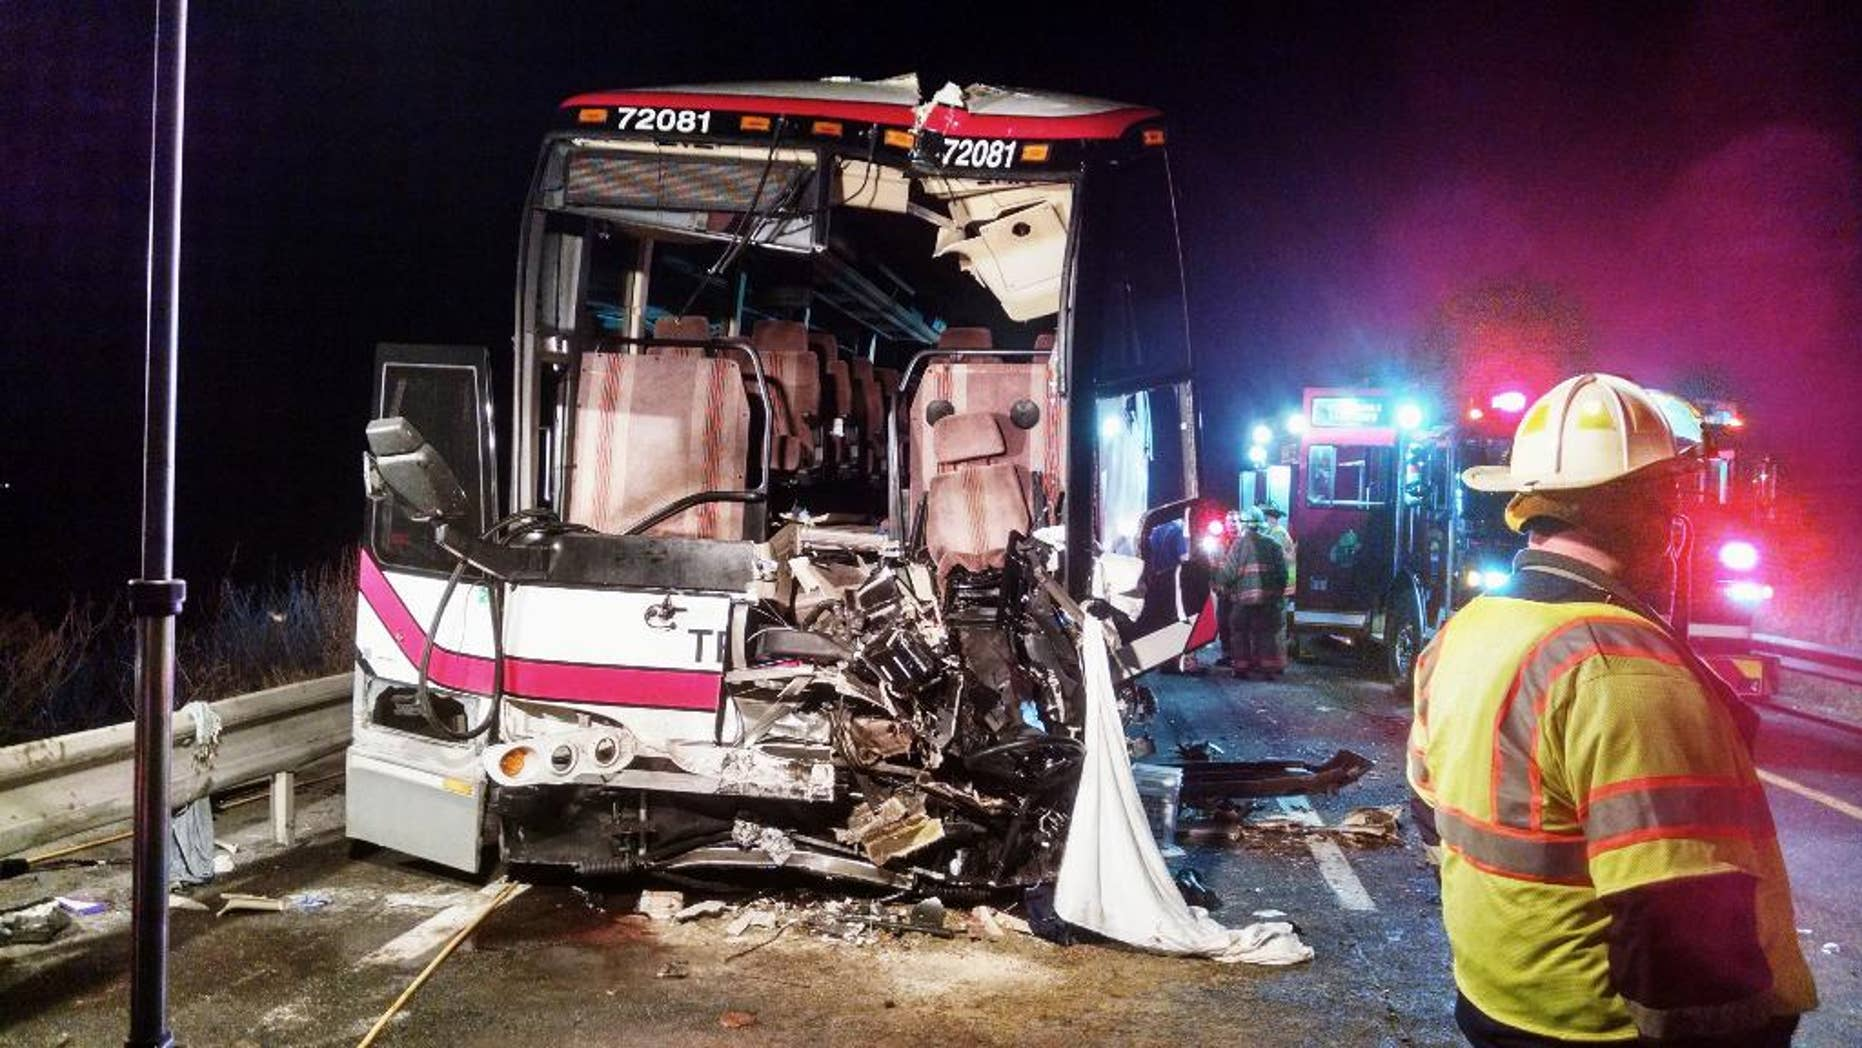 This photo provided by the Onondaga County Sheriff's Office shows the bus involved in a crash with a tractor-trailer and a car that left 27 people injured  on Interstate 81 early Thursday, Nov. 6, 2014, in Nedrow, N.Y. Twenty-six passengers suffered minor injuries on the Pine Hills Trailways bus traveling from Toronto to New York City. The bus driver is in serious condition at a Syracuse hospital. Police say the car driver has been charged with driving while intoxicated.   (AP Photo/Onondaga County Sheriff's Office)